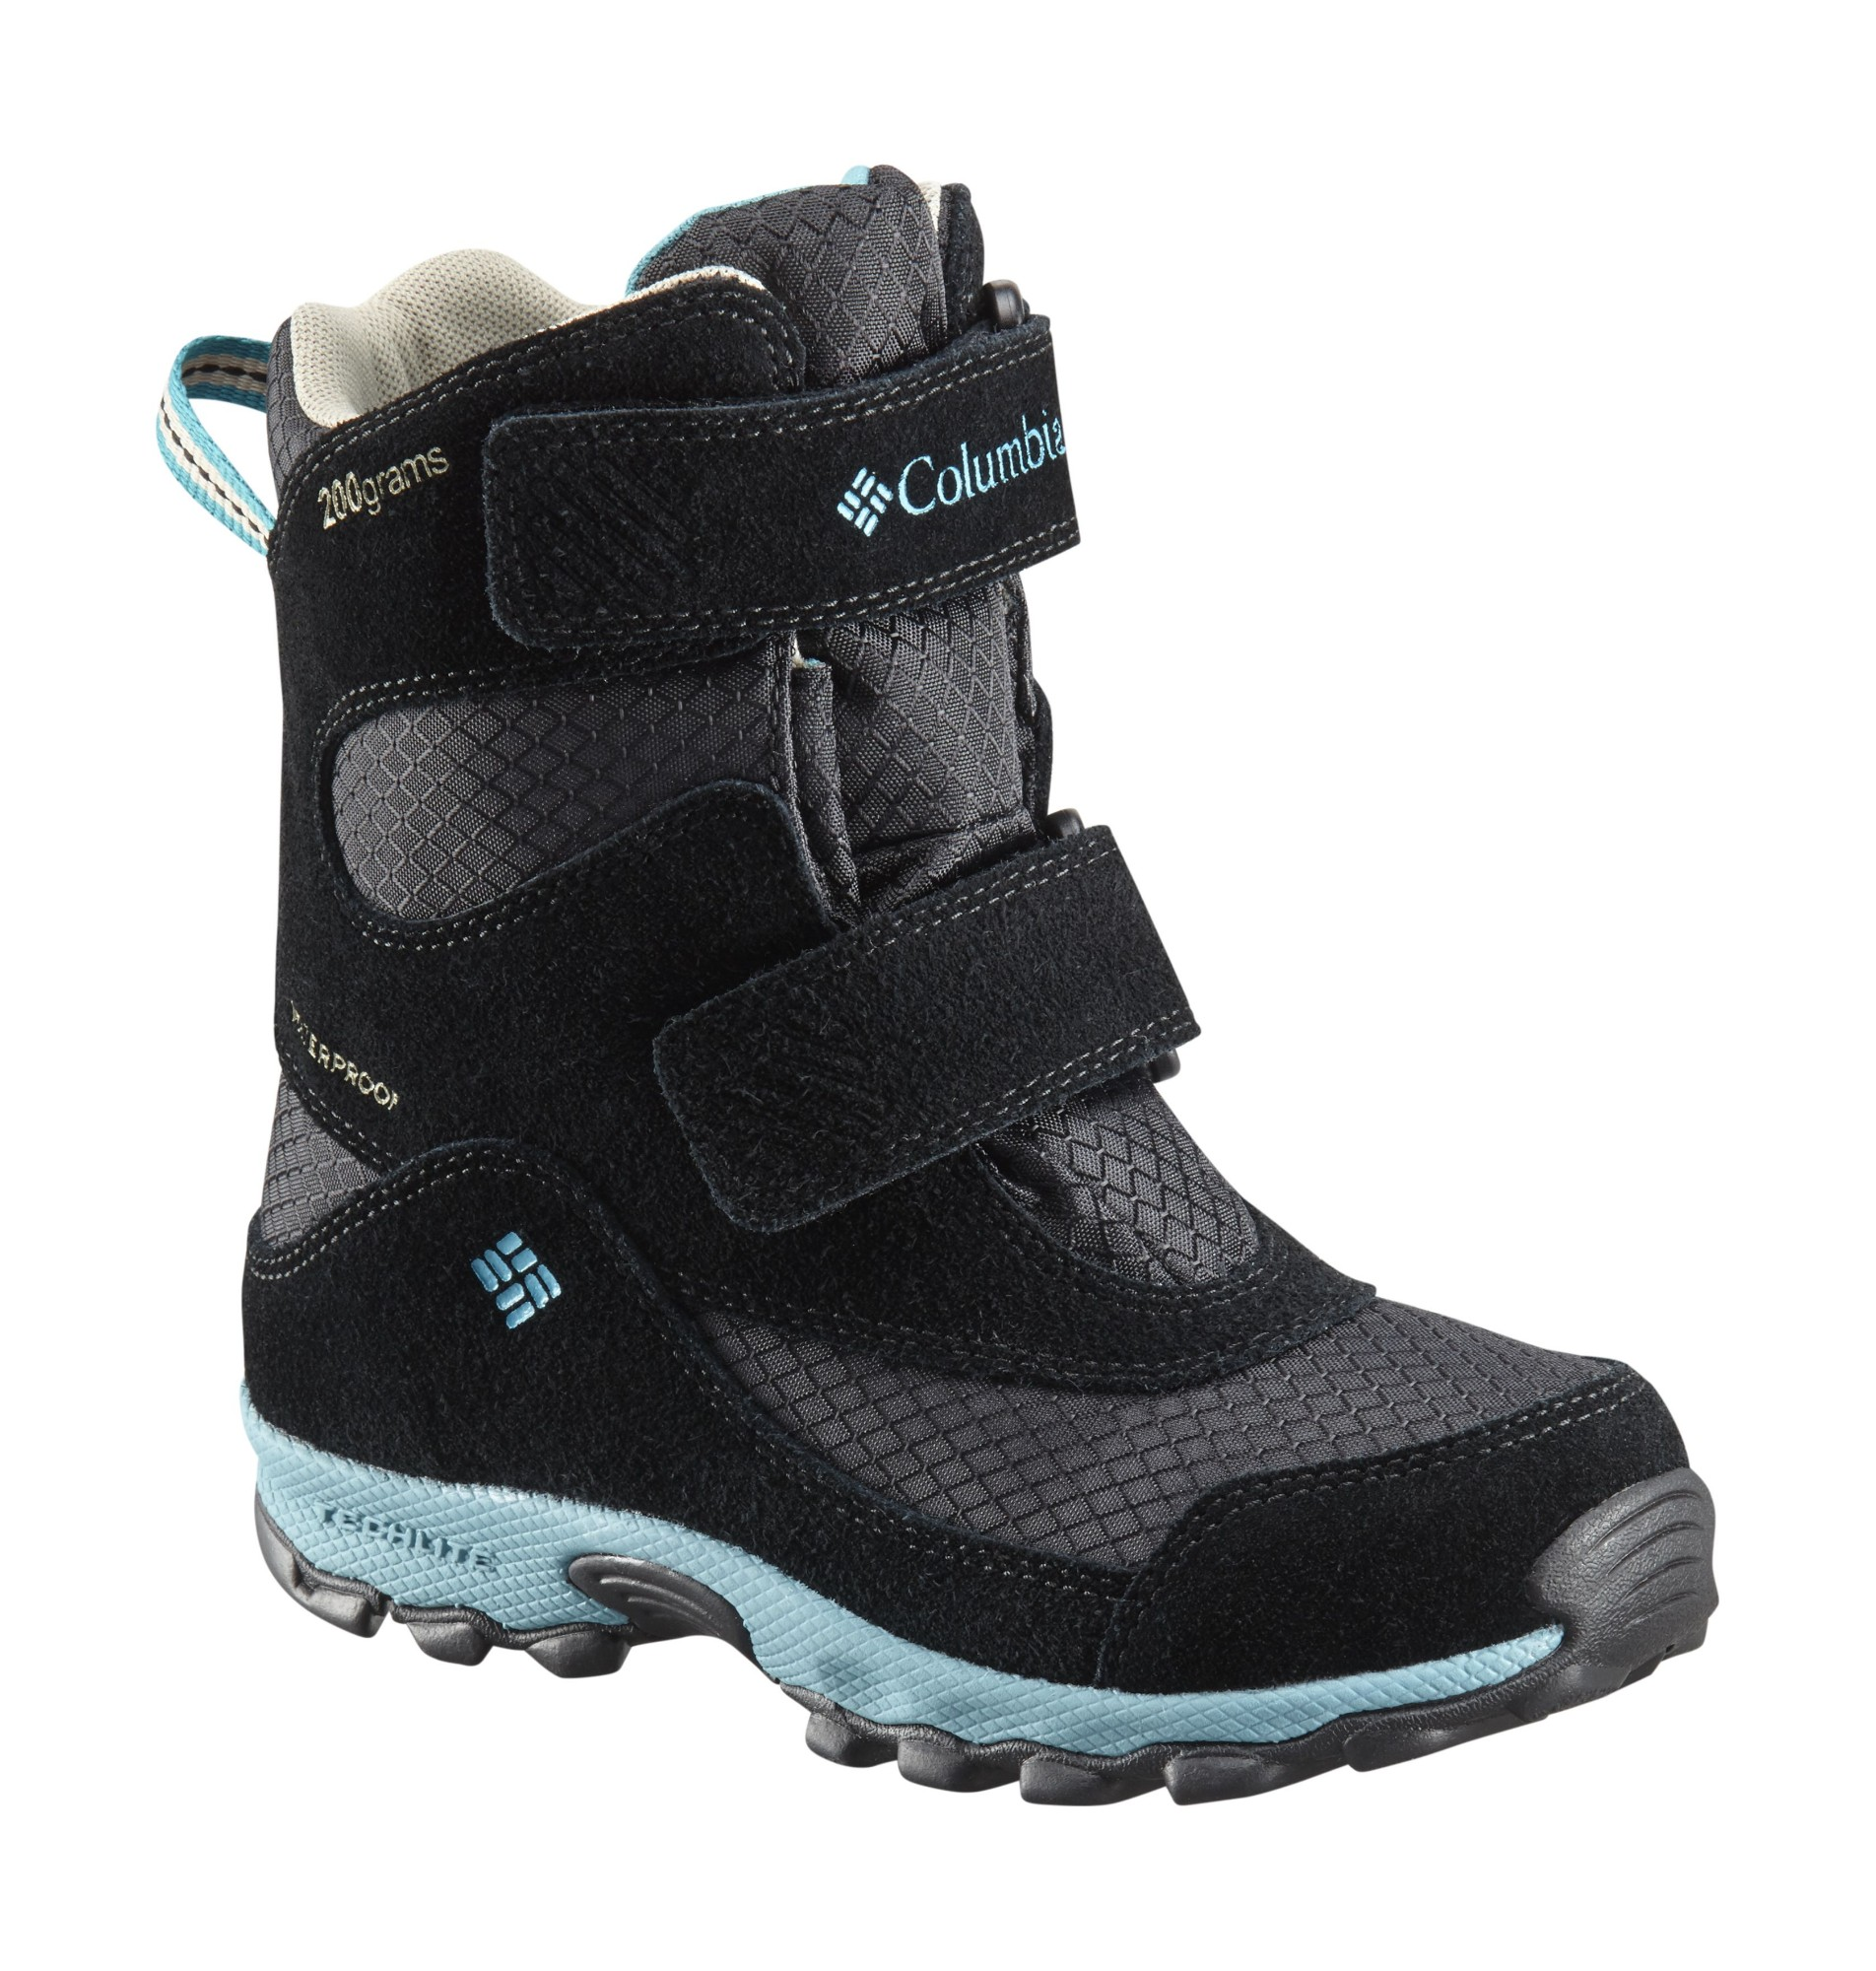 Columbia Parkers Peak Velcro Boot Black/Pacific Rim 25